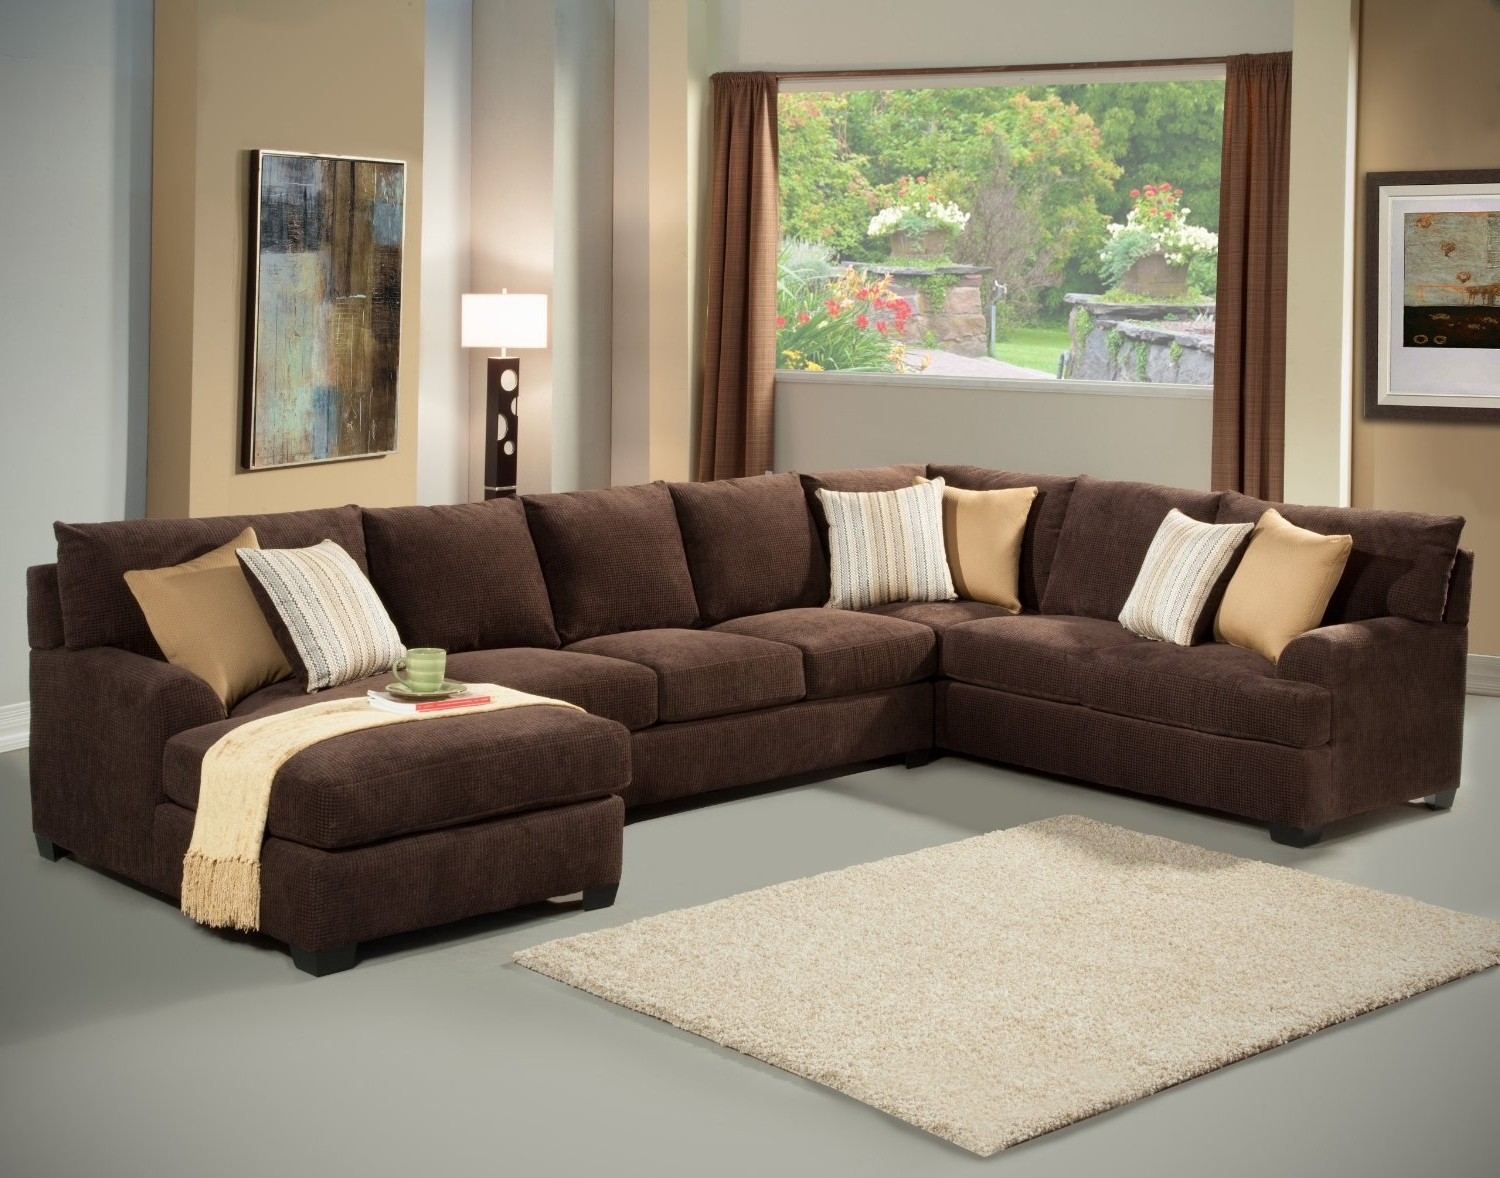 Newest Microfiber Sectional Sofas With Chaise Intended For Modular Sleeper Sofa Chaise Sectional Sleeper L Shaped Sleeper (View 11 of 15)